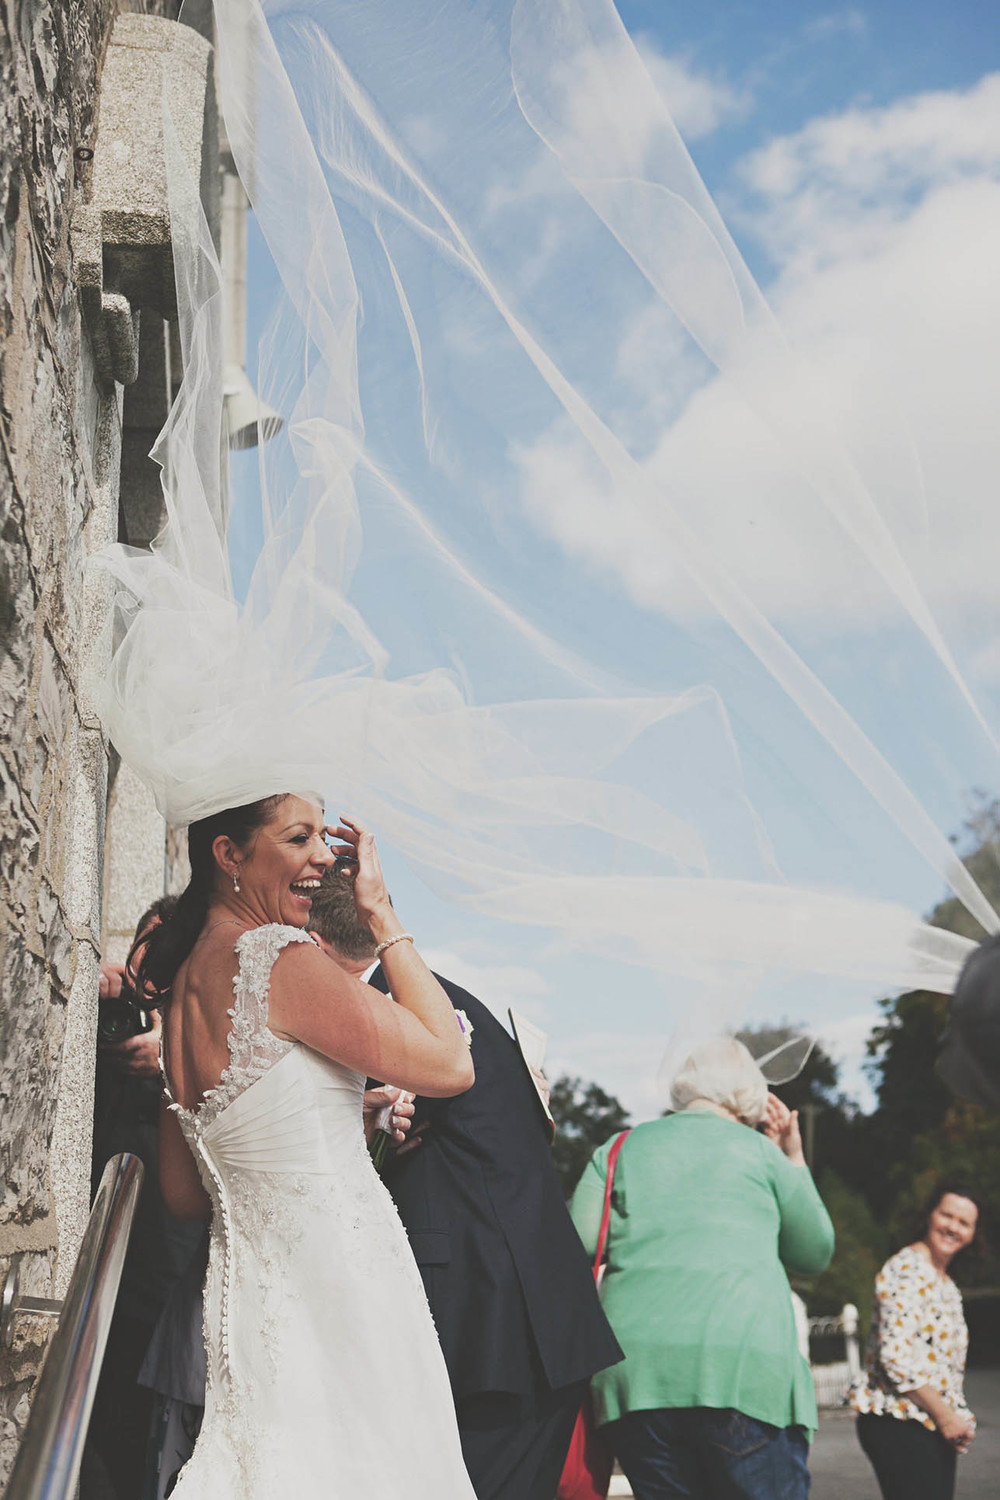 Middleton Park House wedding, opportune photograph of veil blowing in the wind